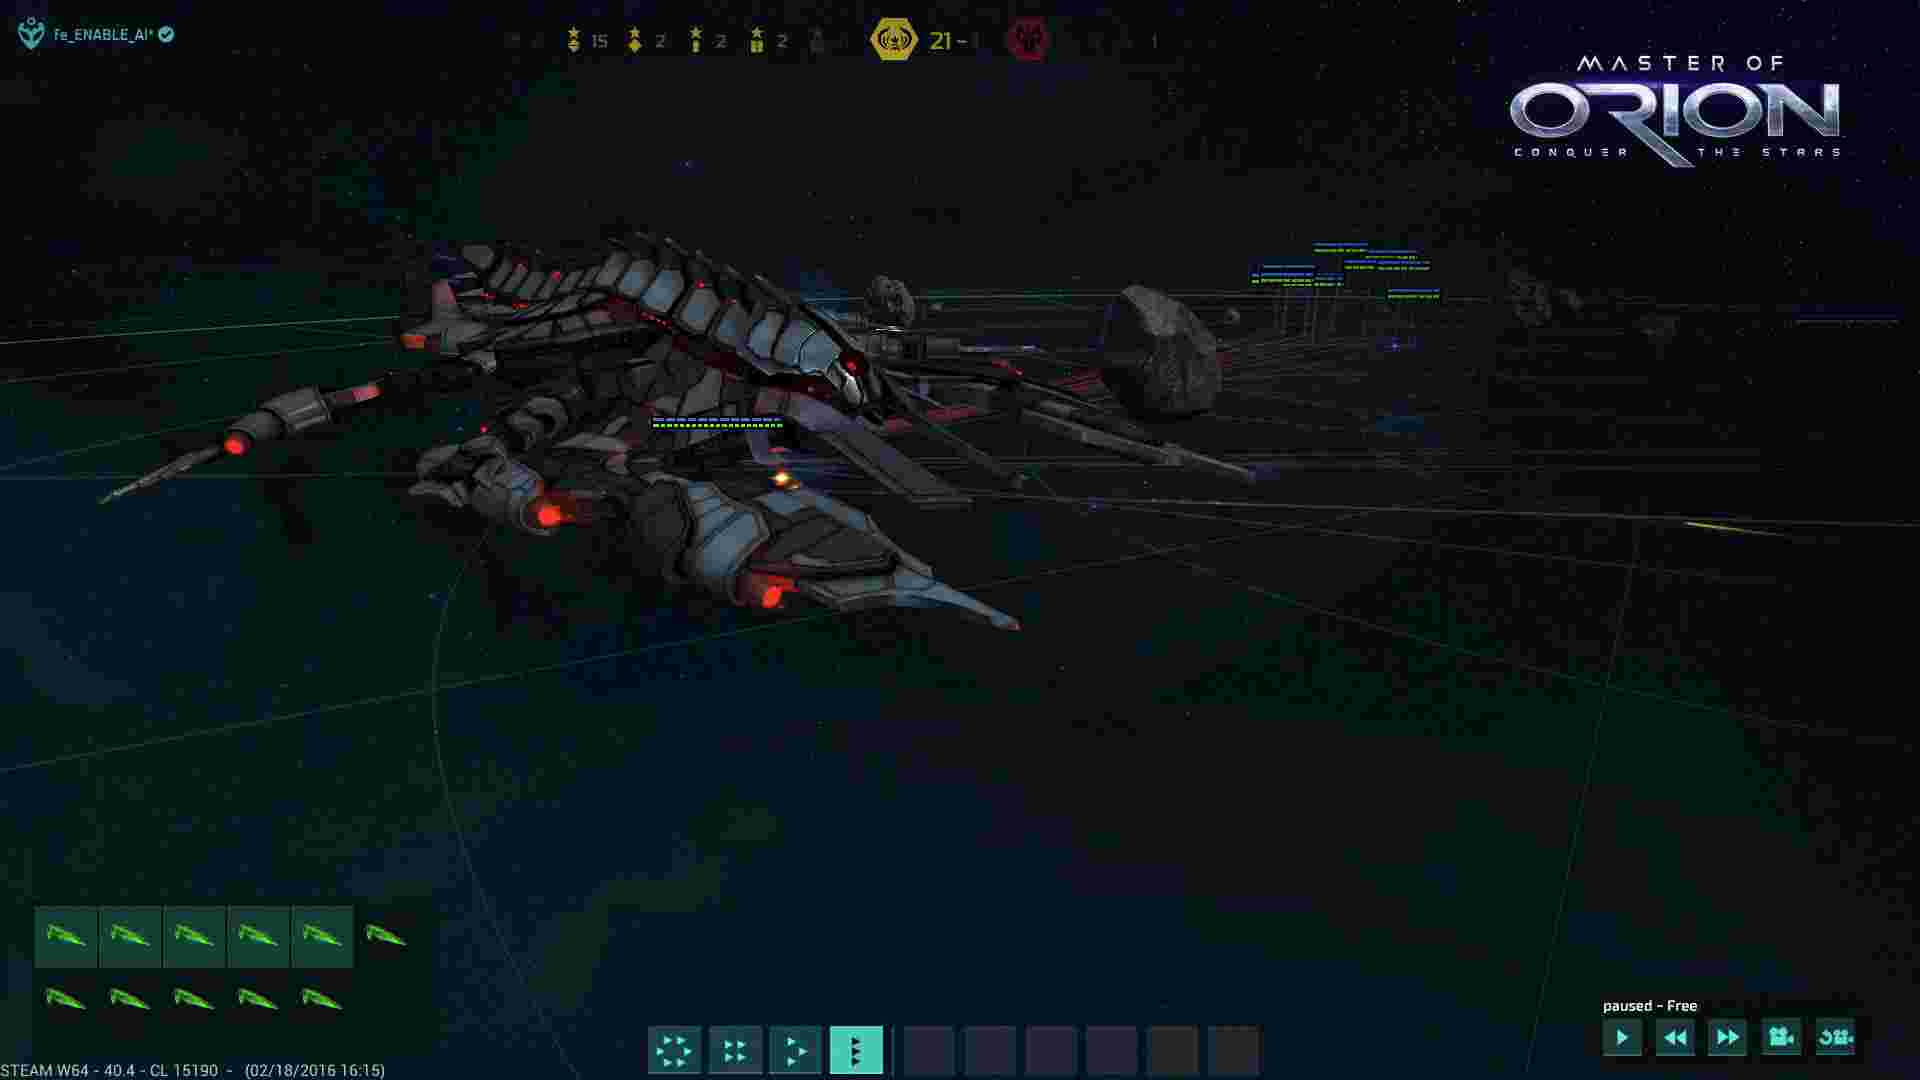 news.moo_screens_gameplay_early_access_image_07